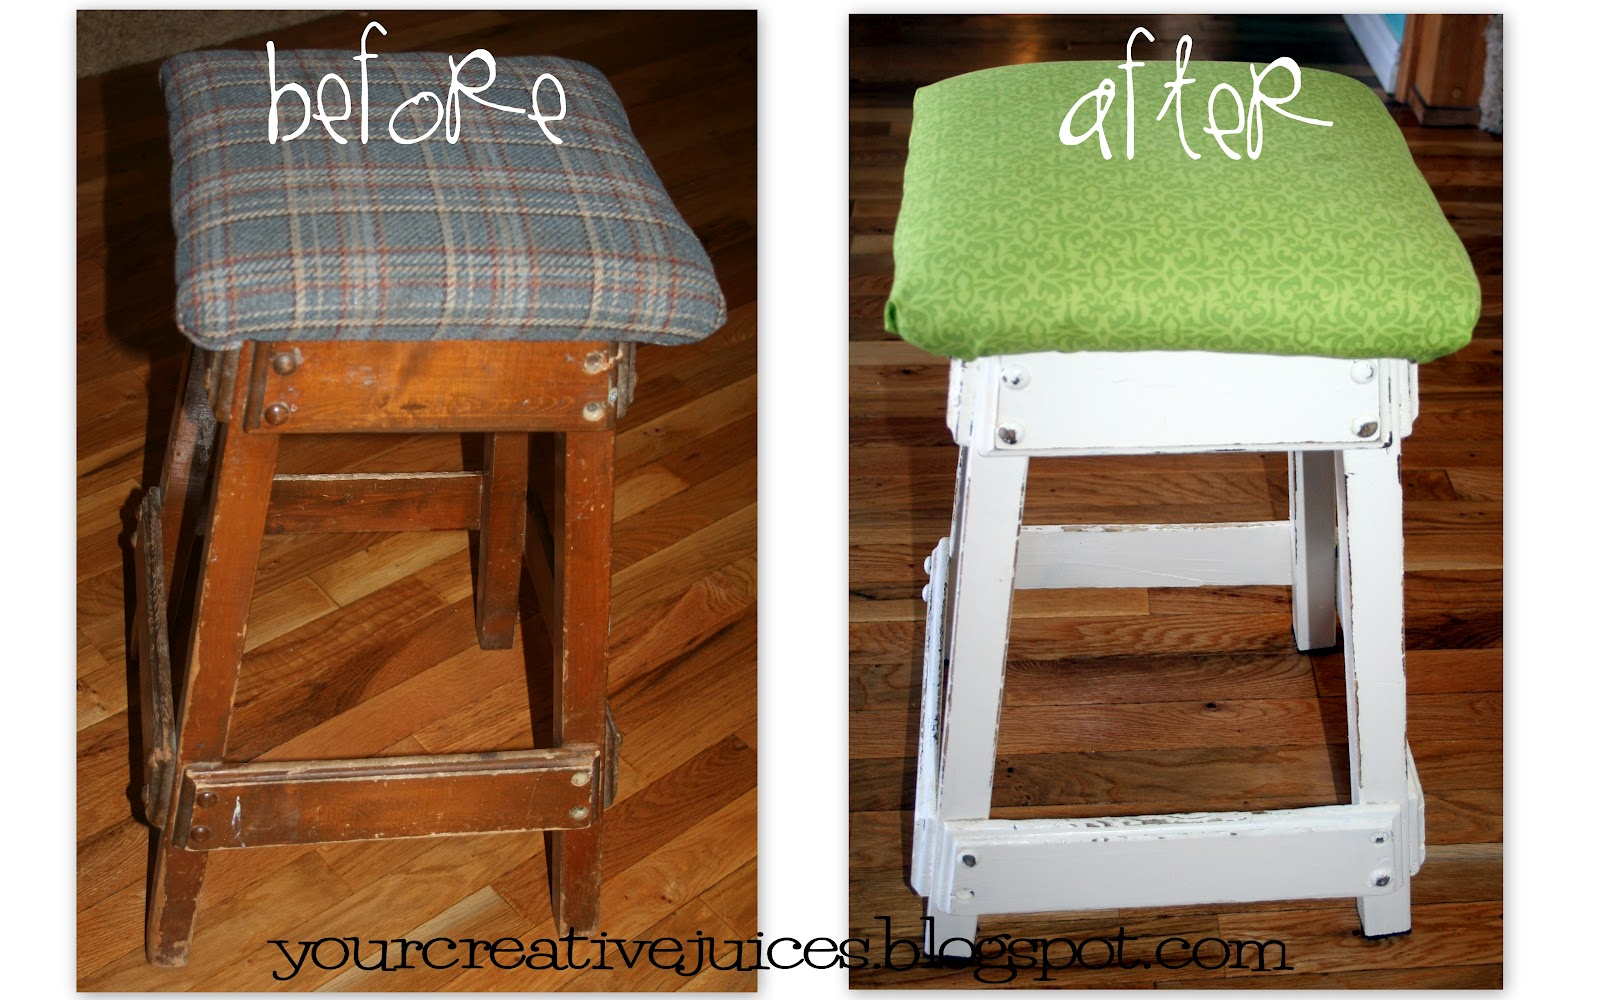 Creative Juices old bar stool : 2012MARCHprojects from yourcreativejuices.blogspot.ca size 1600 x 1000 jpeg 287kB